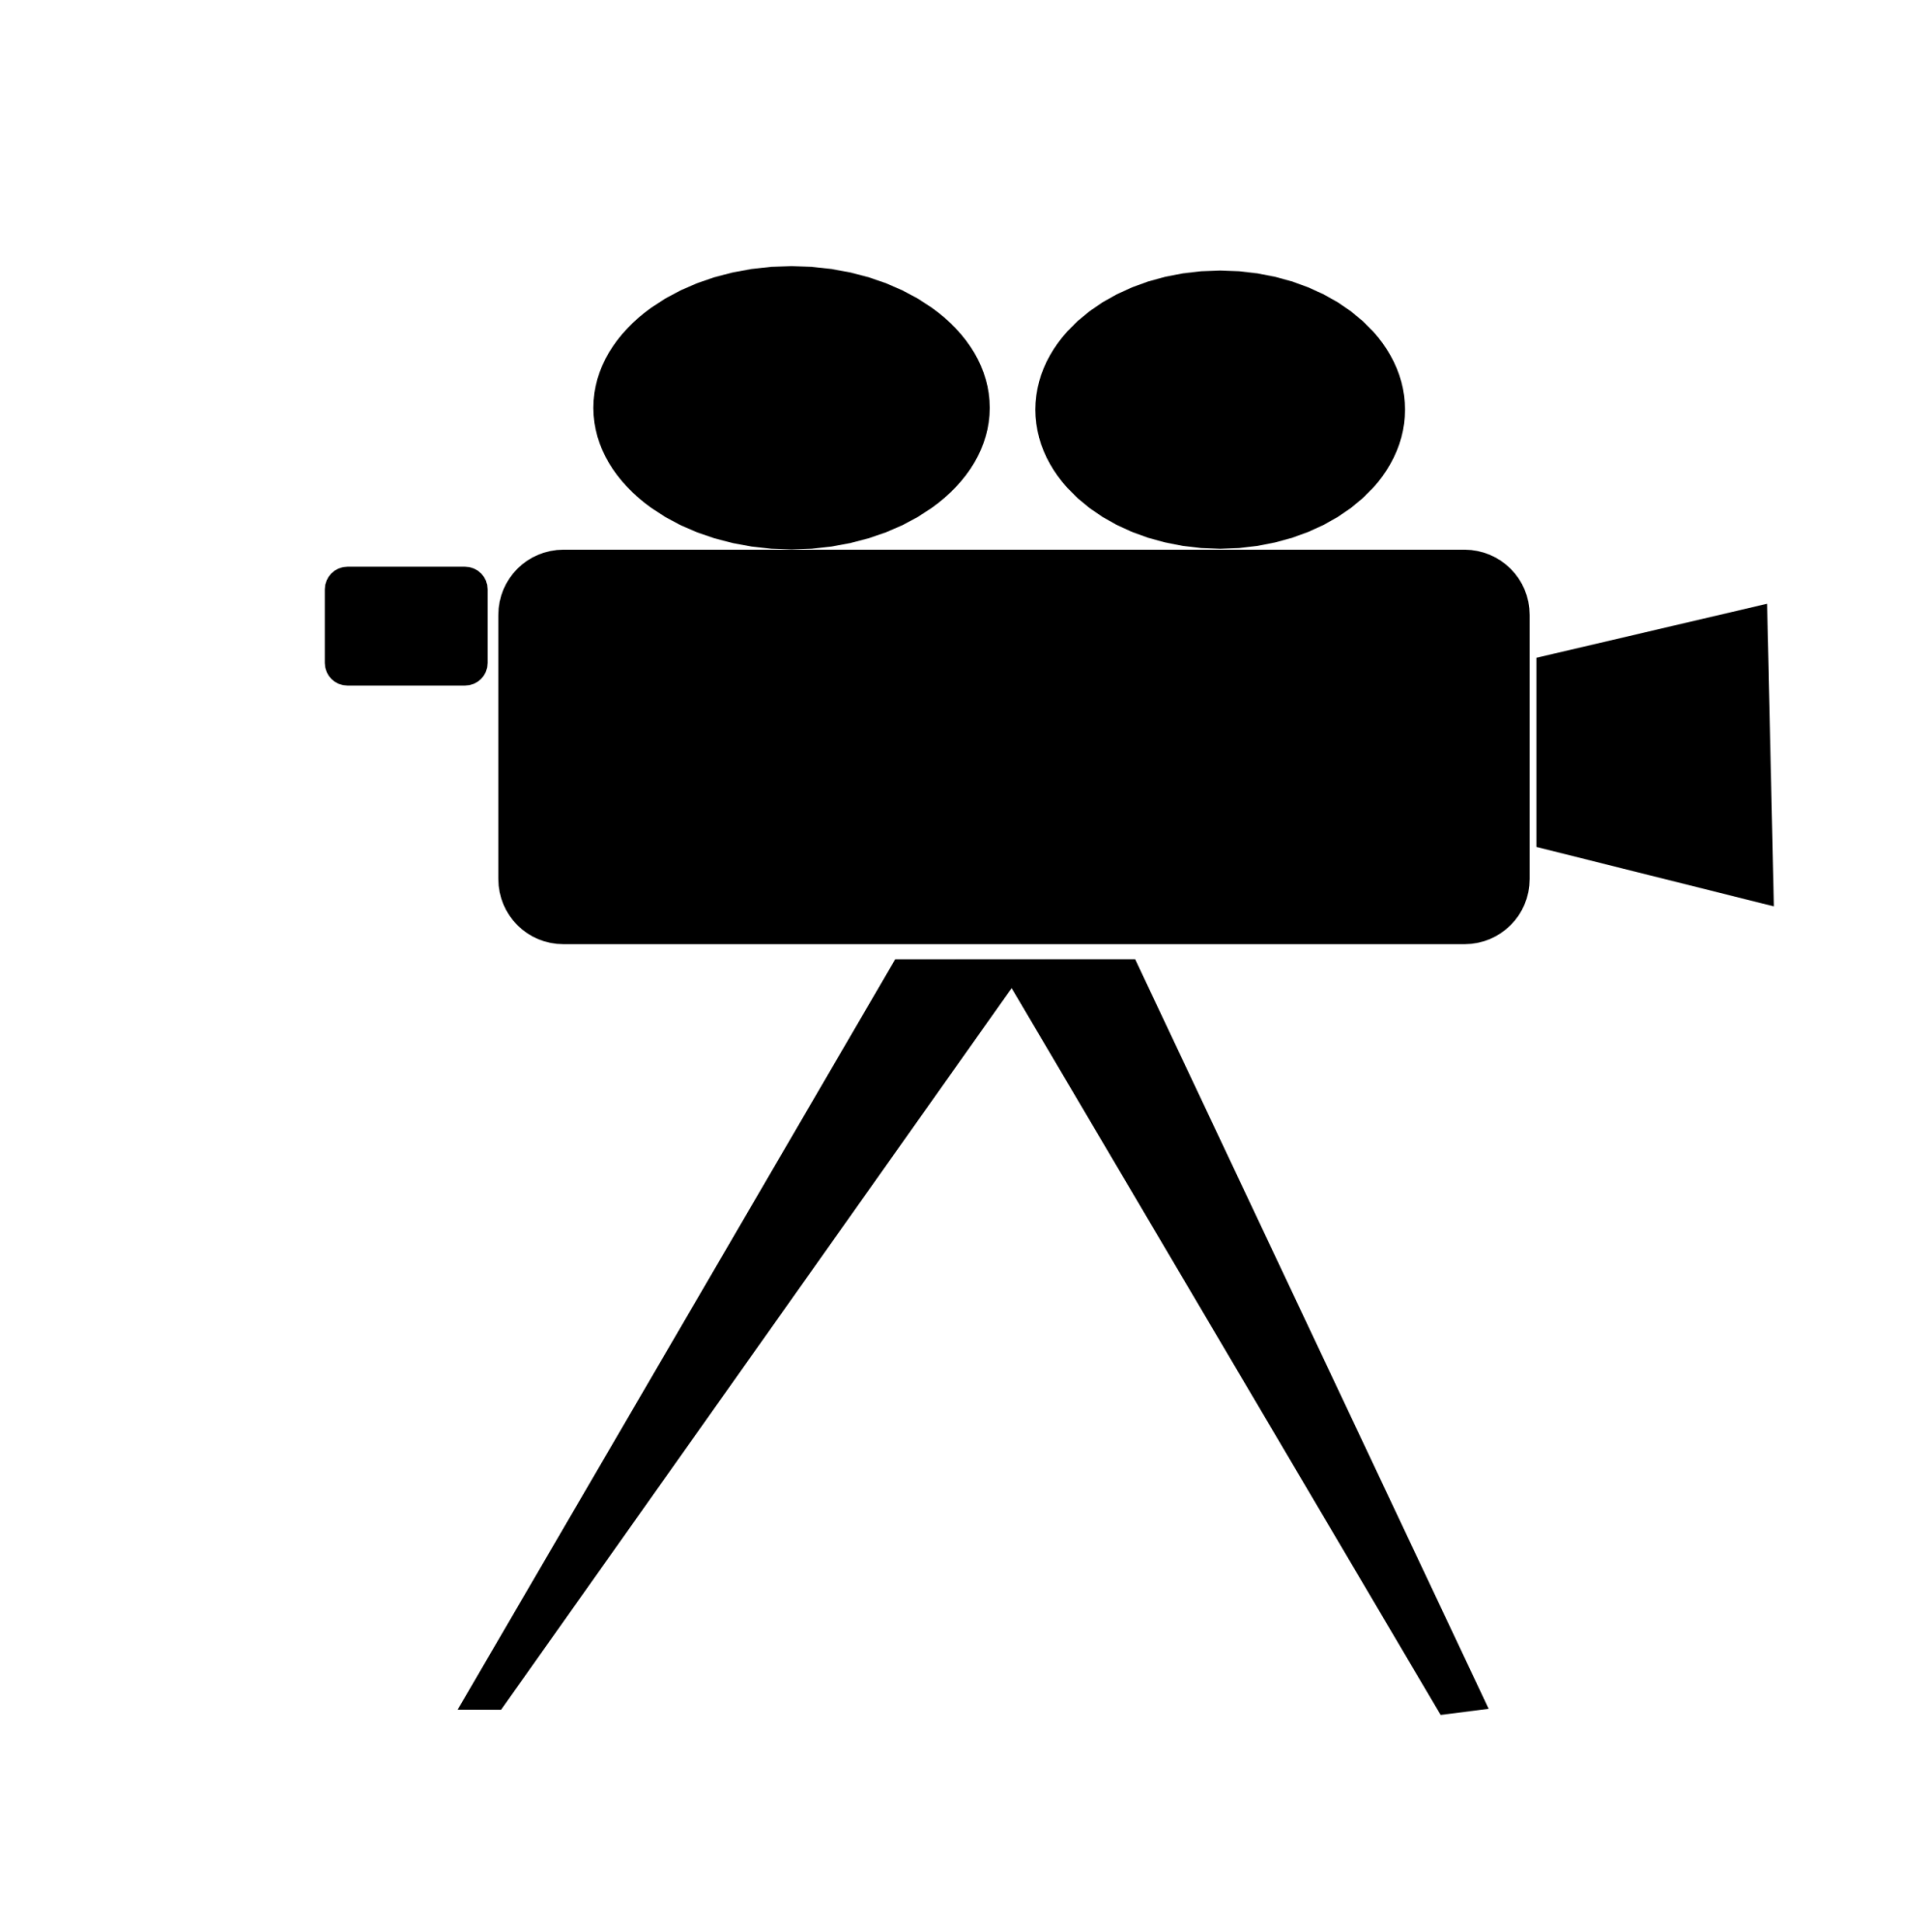 hight resolution of movie camera clipart black and white